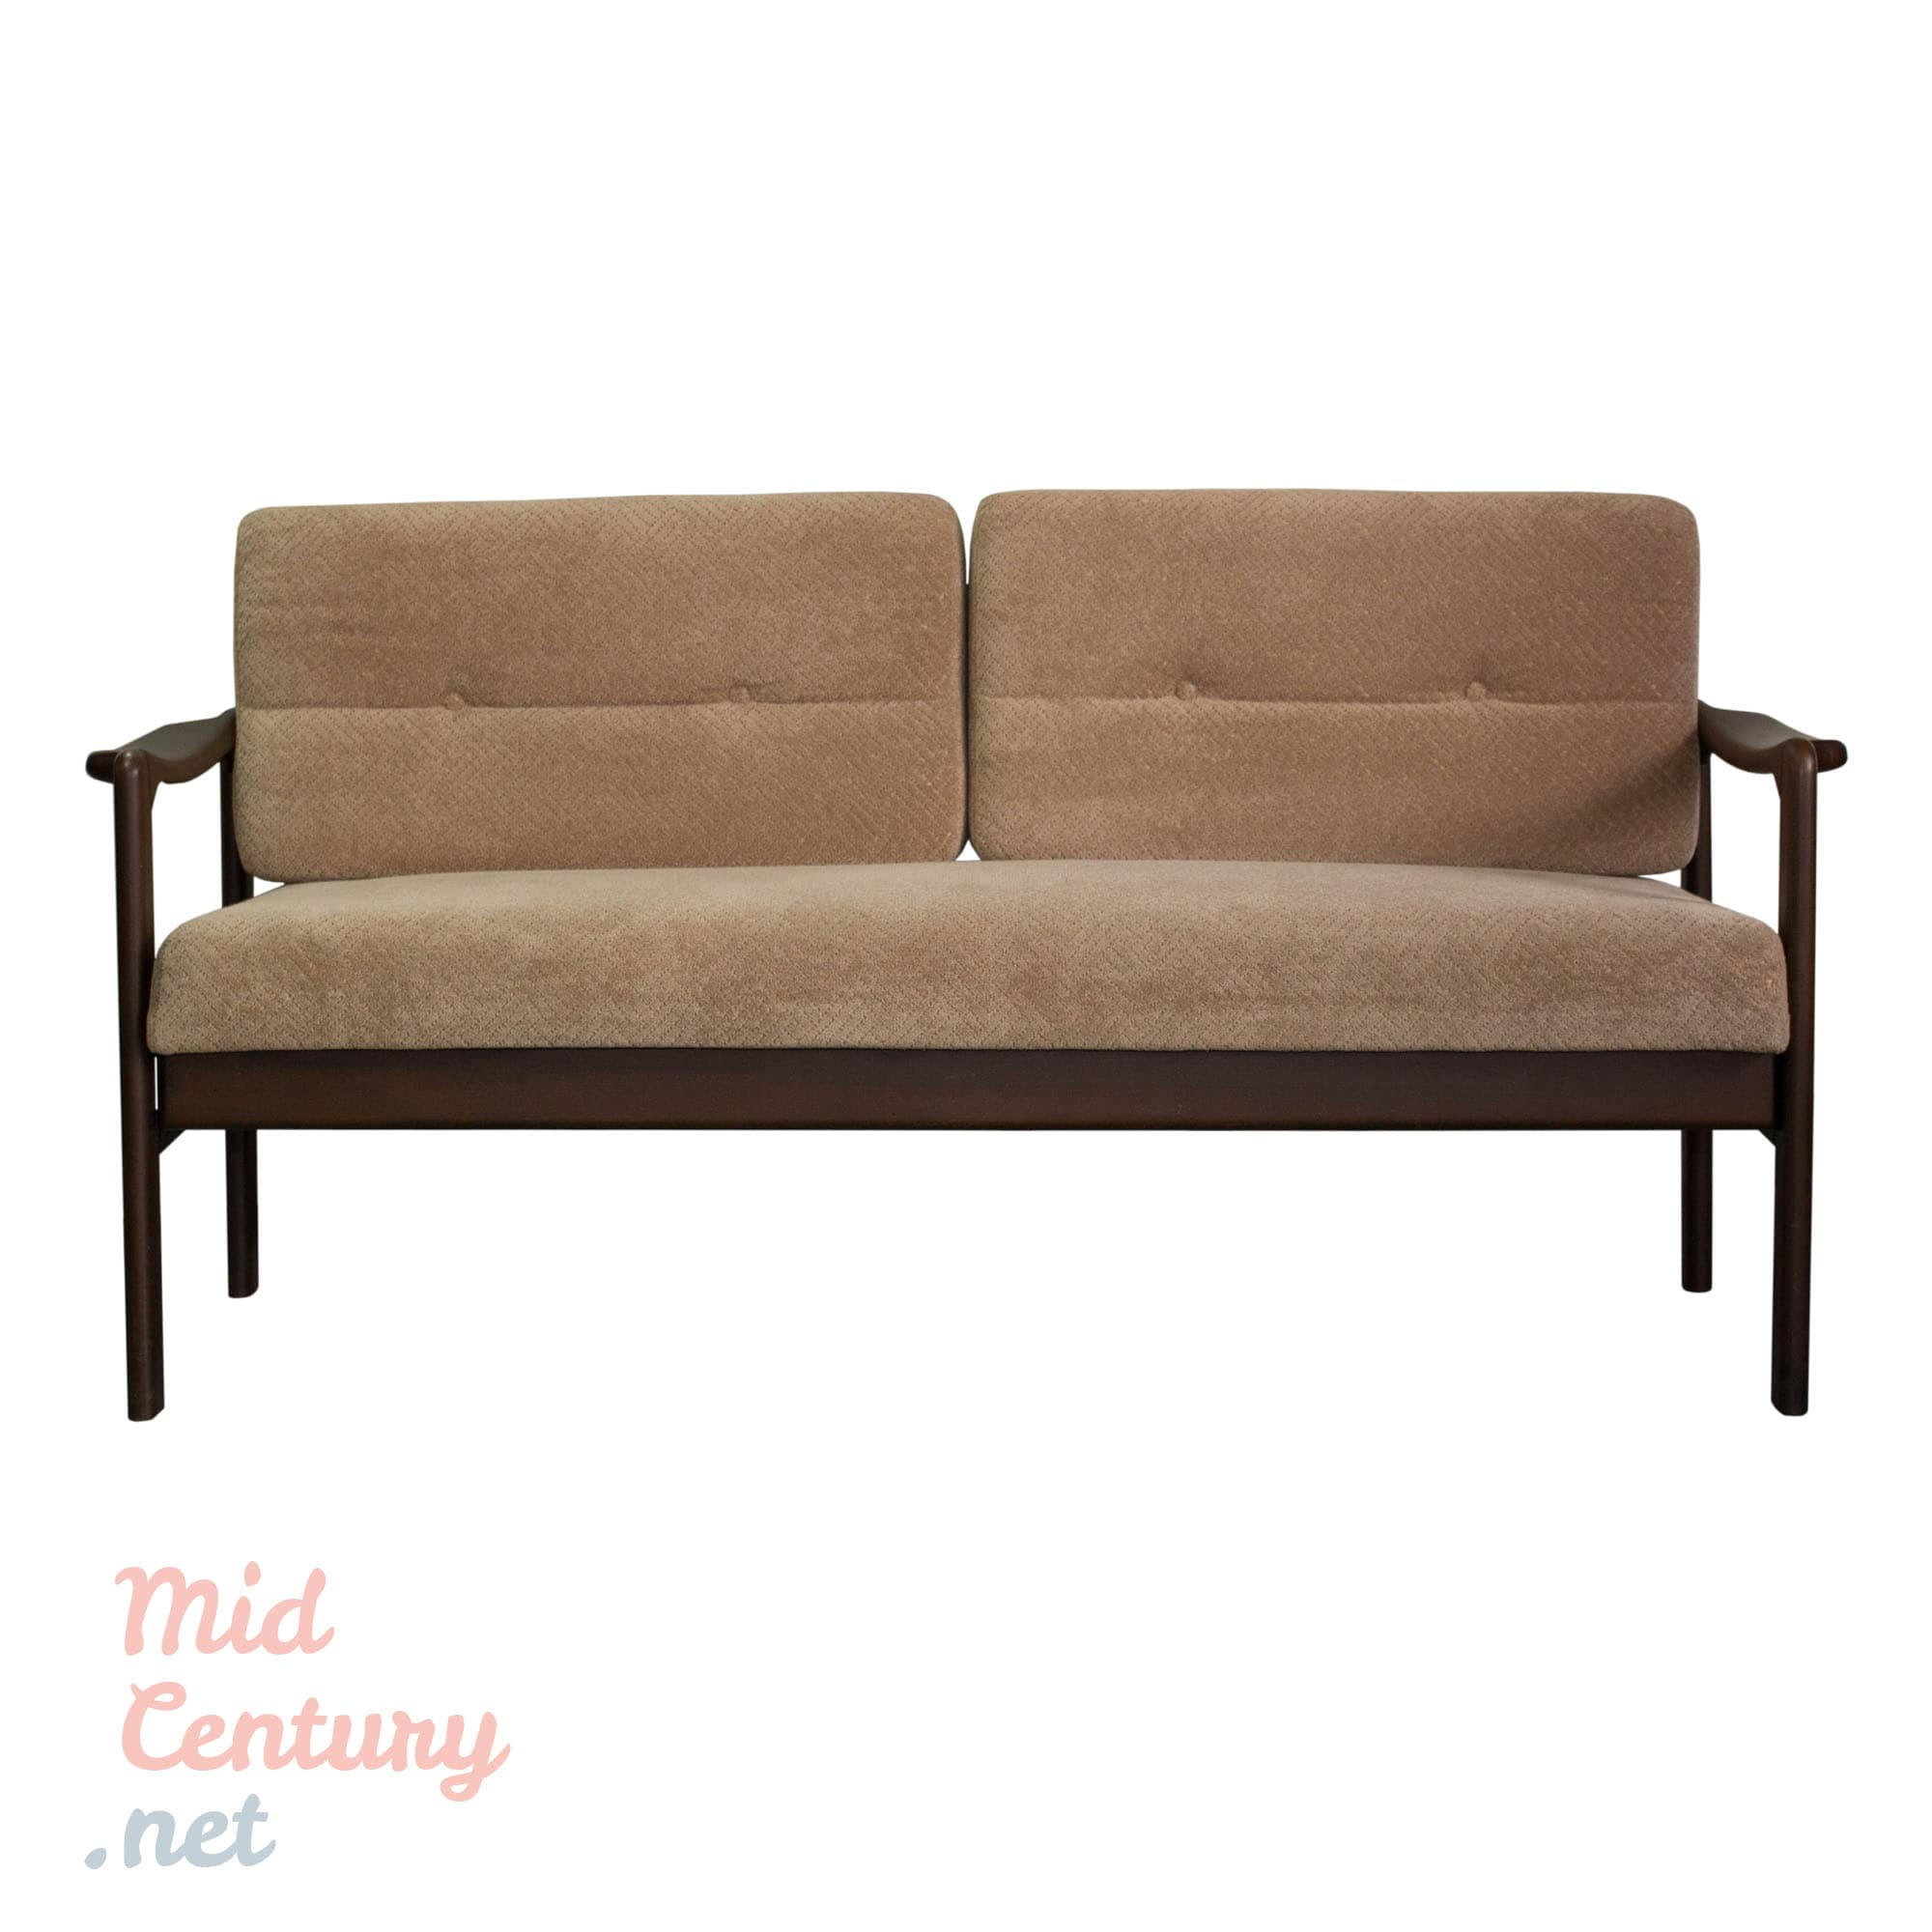 Beautiful Daybed made in Germany in the 1980s • Mid-Century | {Küchenmöbel made in germany 50}